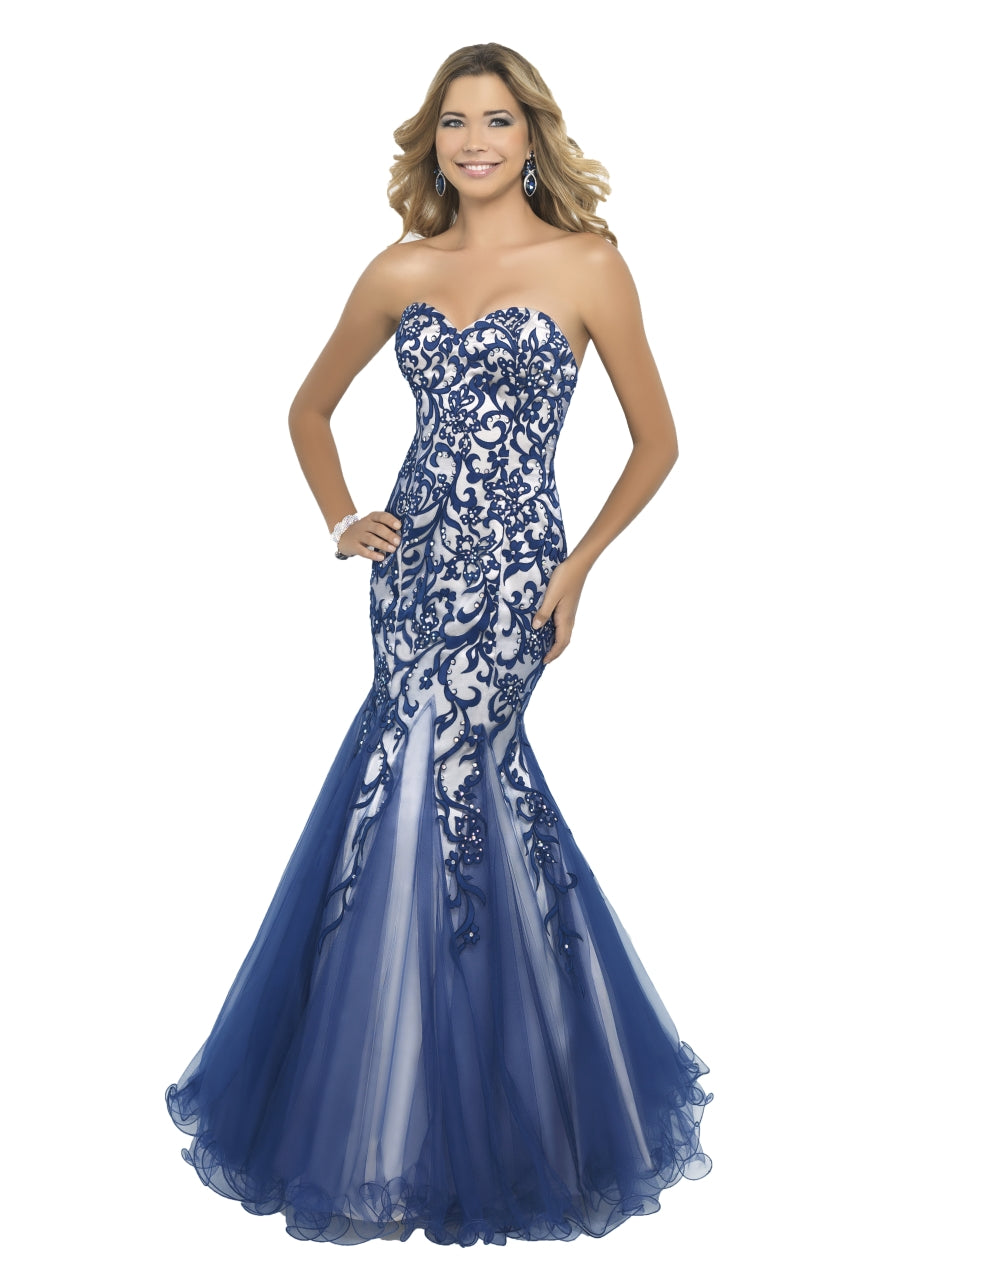 Mermaid Strapless Gown